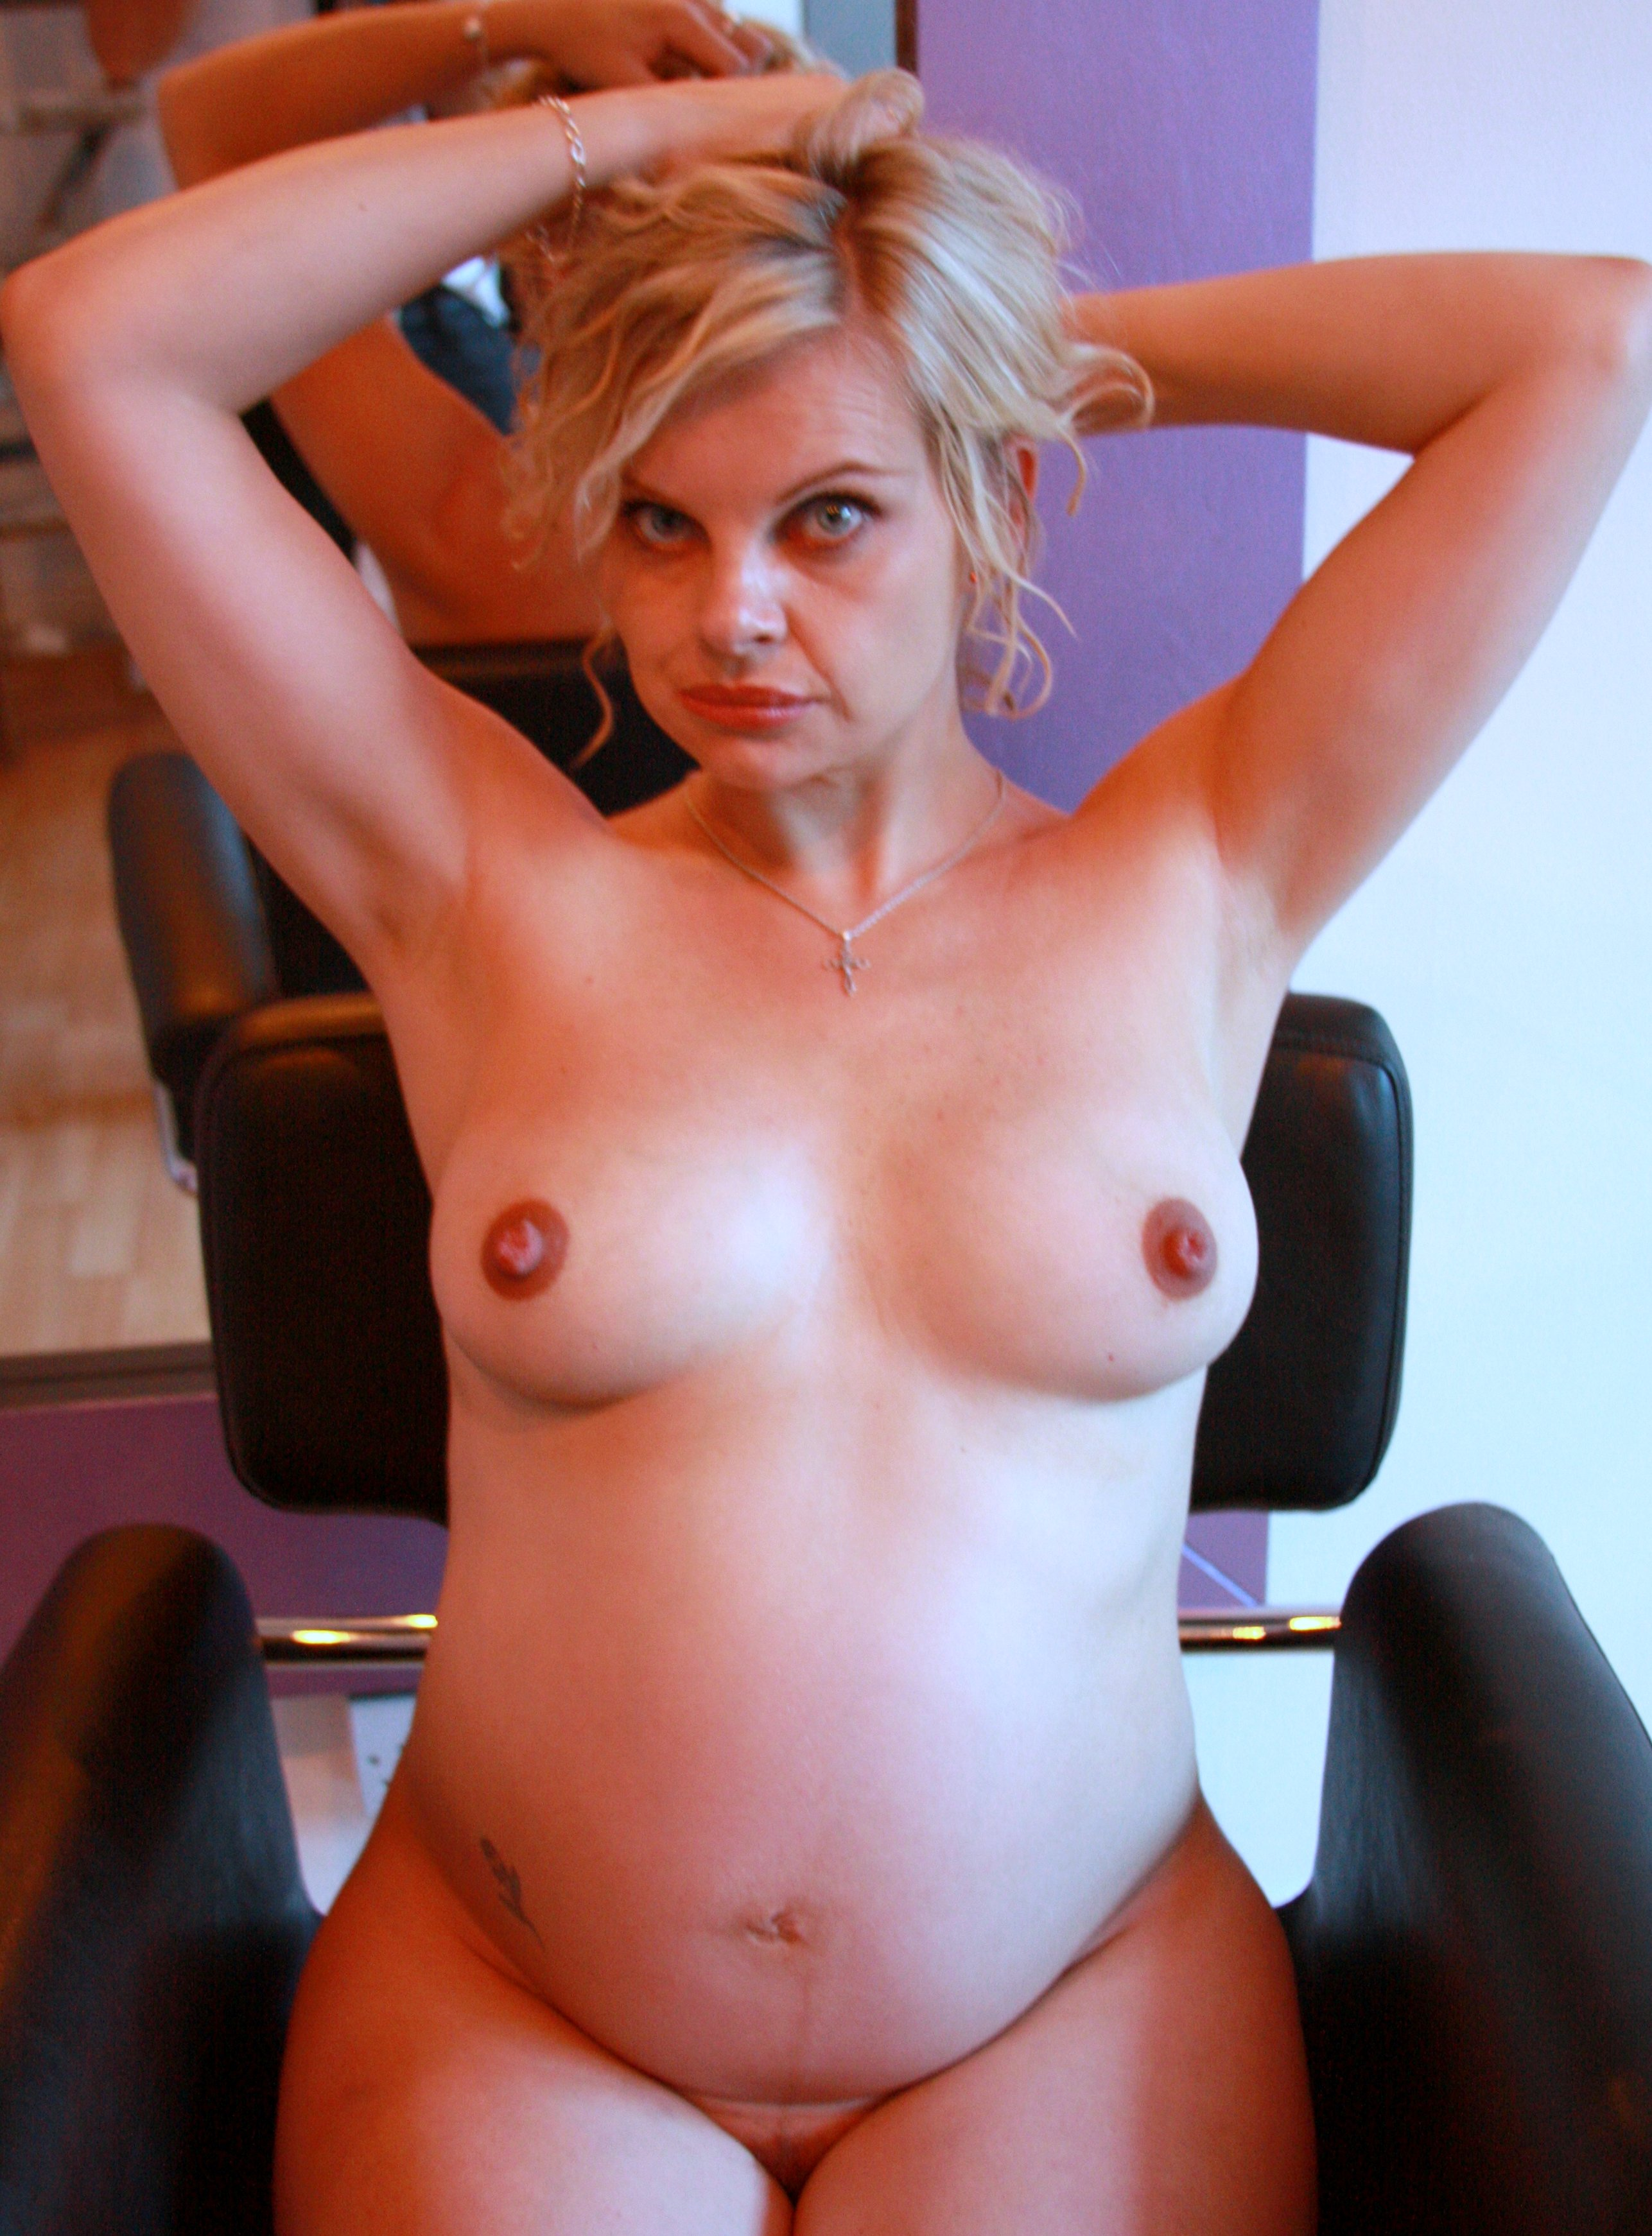 File:Nude pregnant woman on hairdresser's chair color.jpg